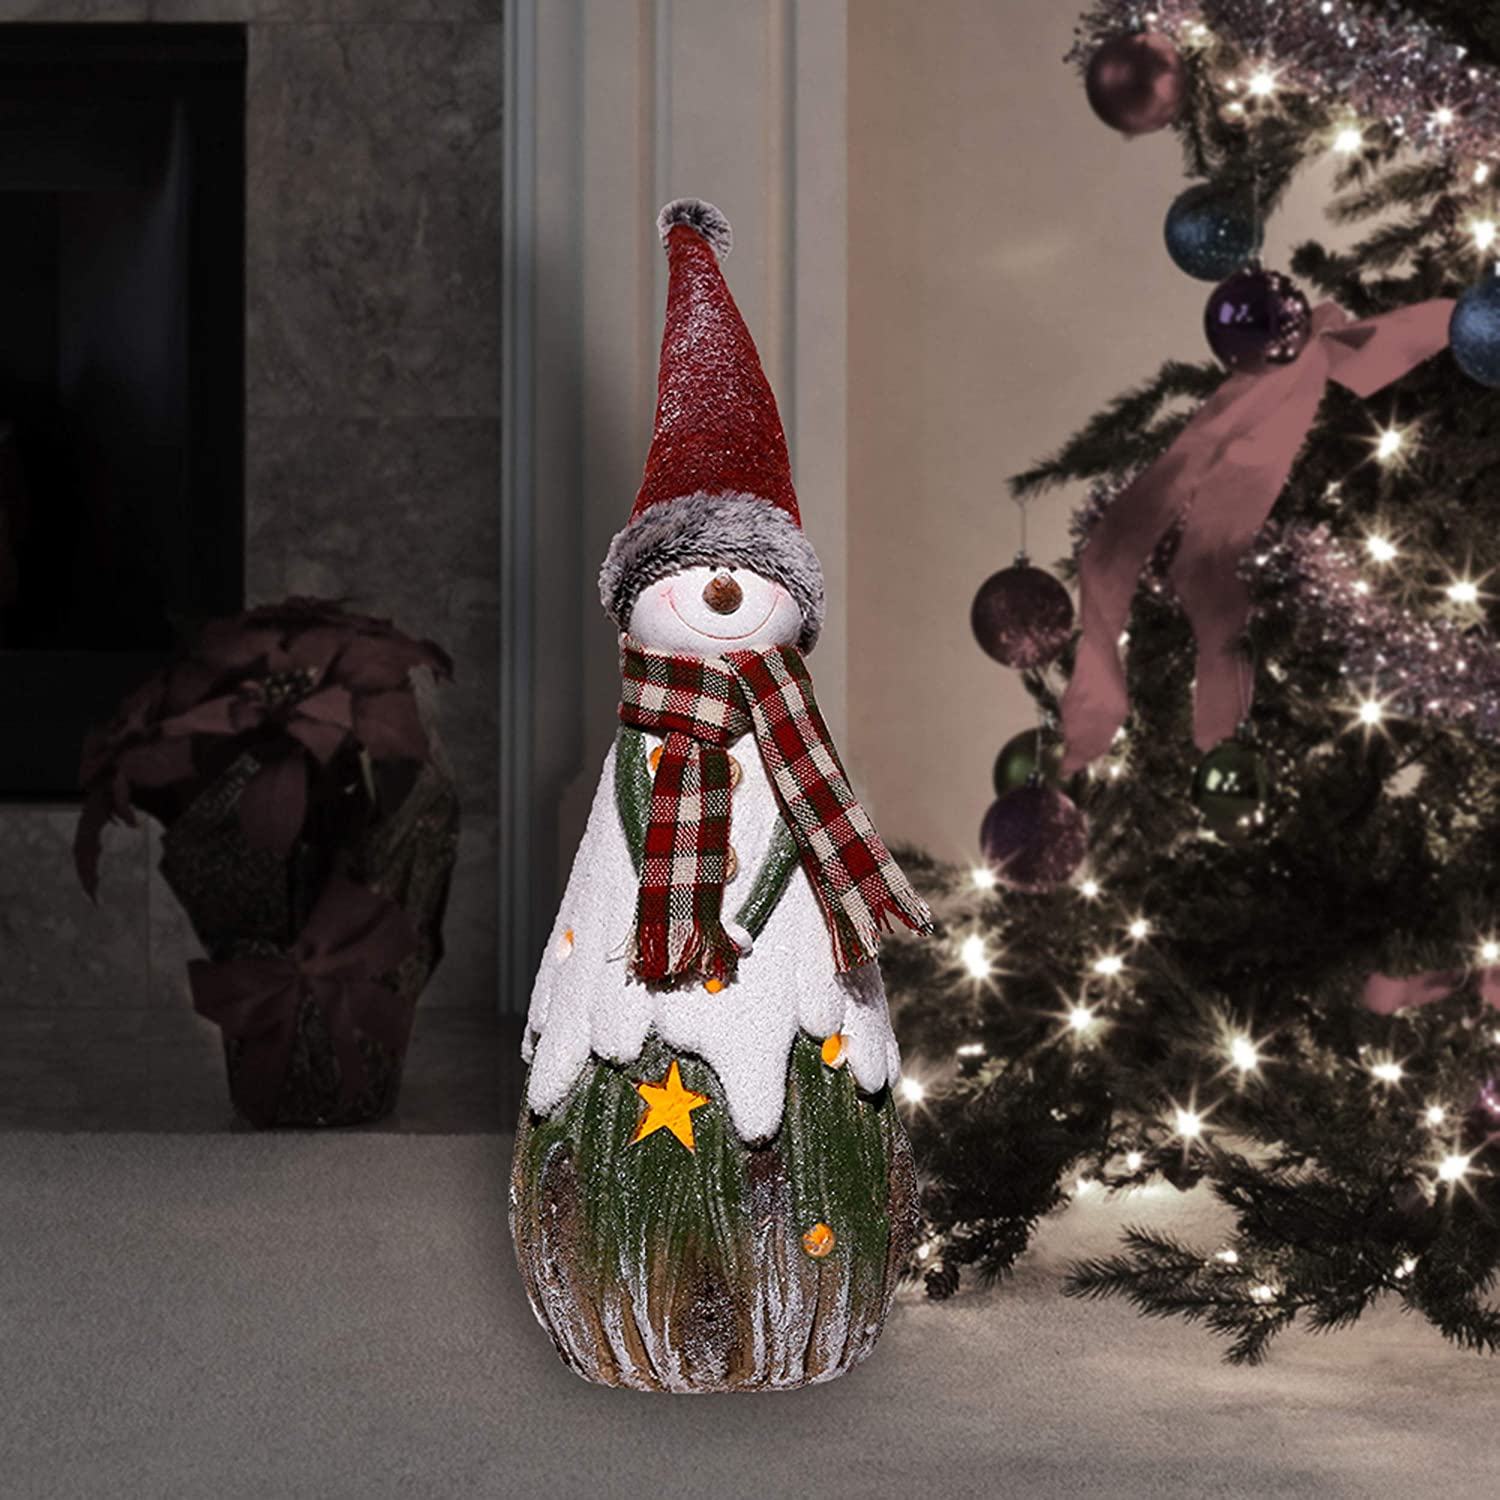 Alpine Corporation WTJ217 Christmas Country Snowman Tea Light Holder, Indoor and Outdoor Festive Home, Garden, Lawn Holiday décor, Multi